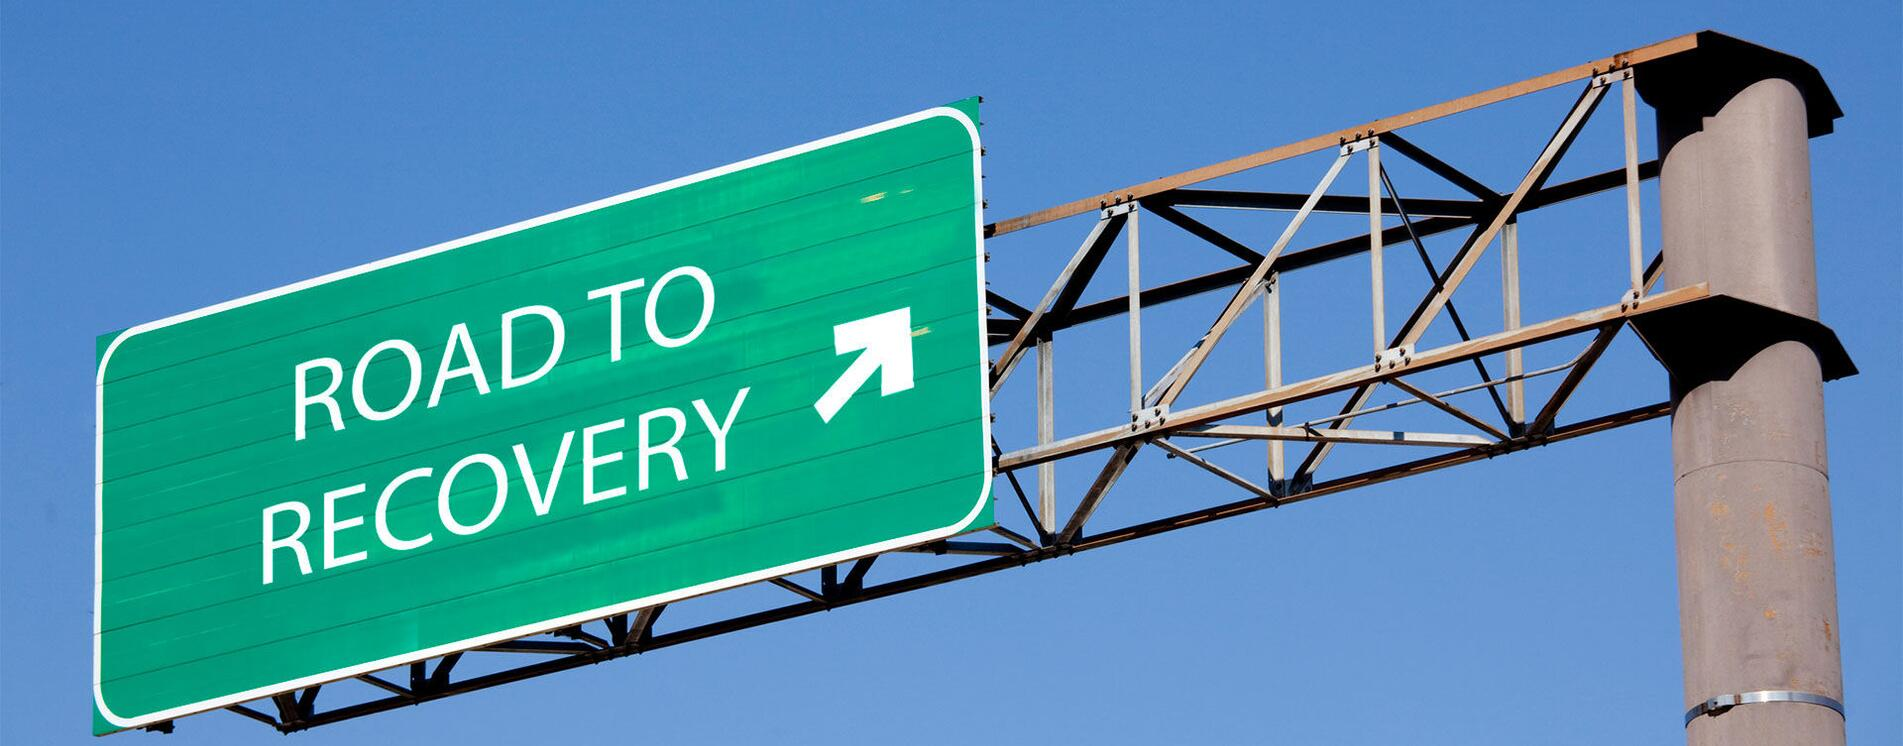 Planning for Resiliency and the Road to Recovery